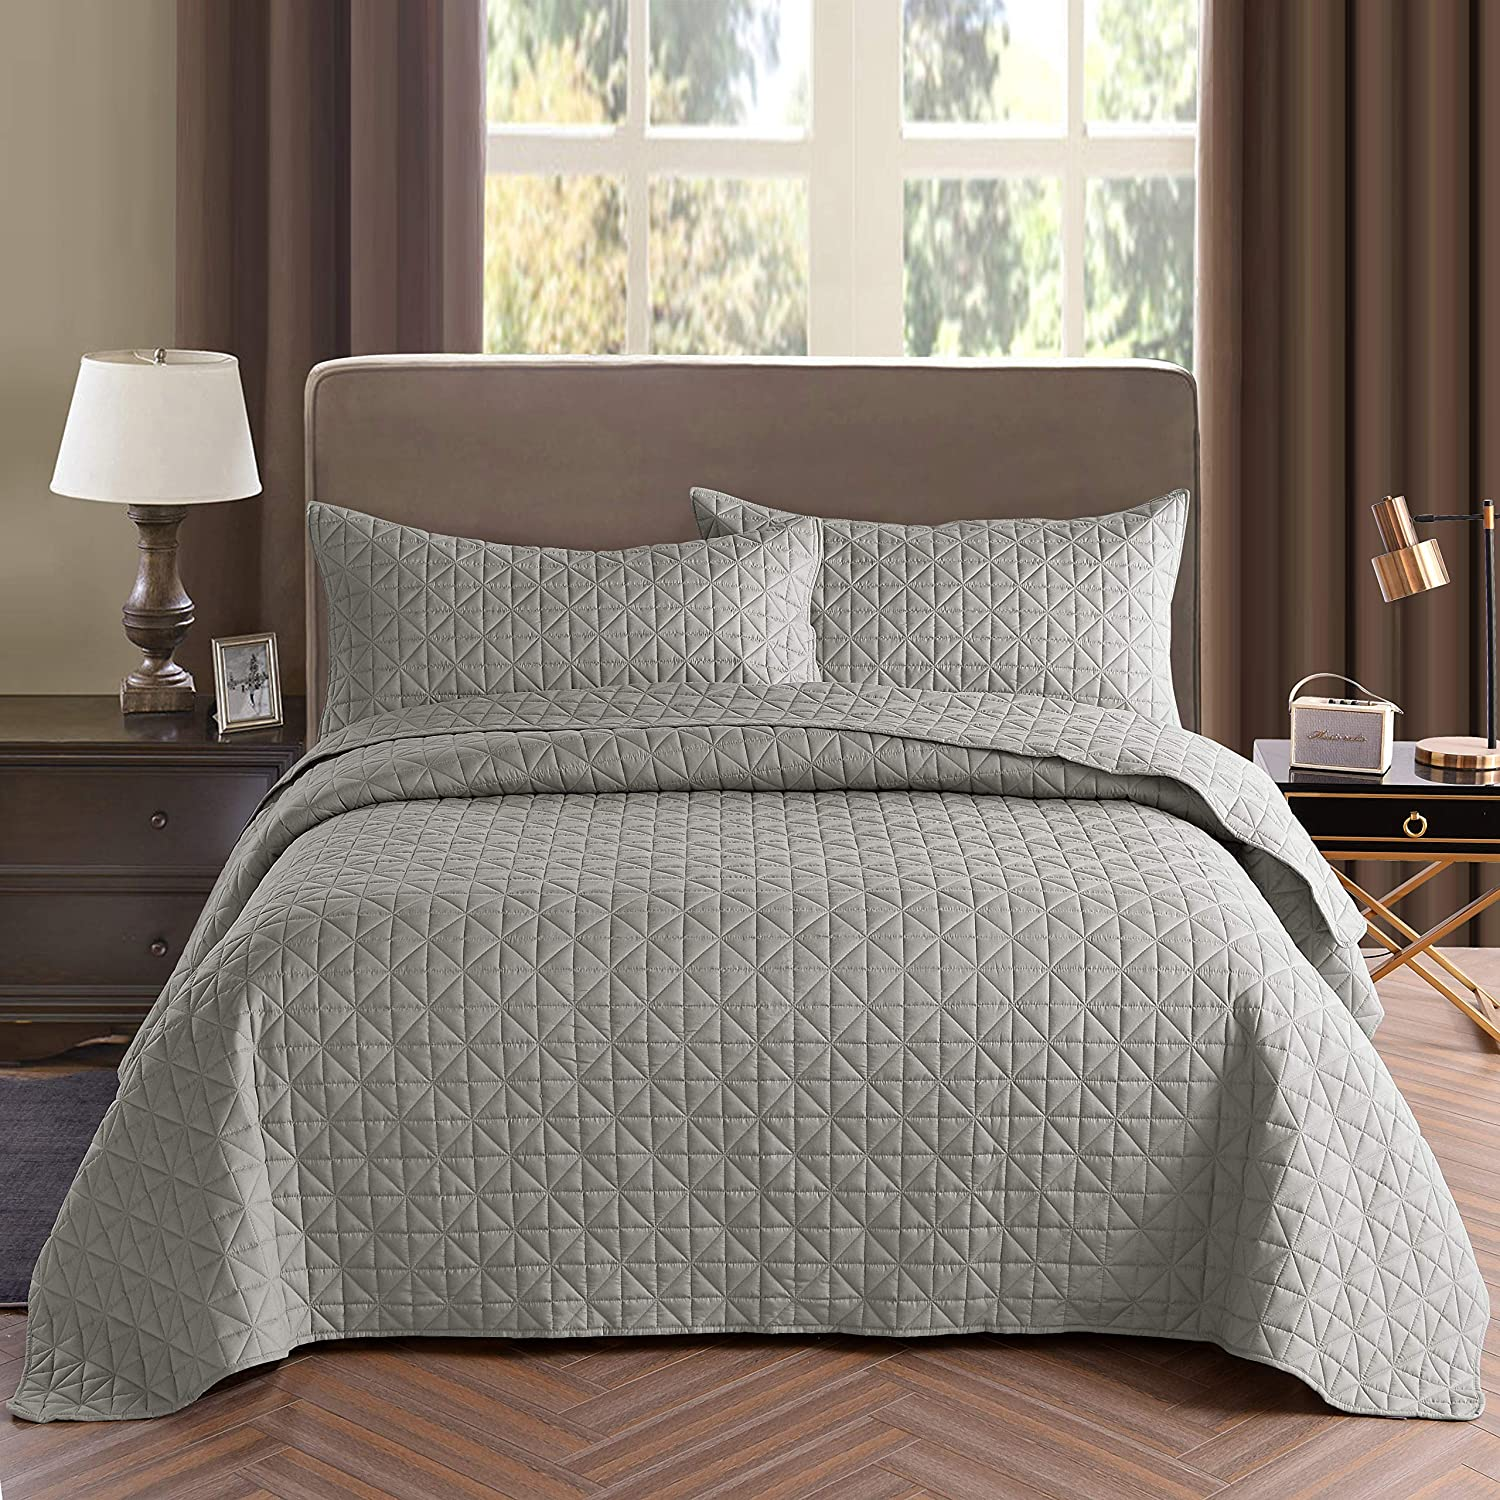 Exclusivo Mezcla 2-Piece Twin Size Quilt Set with One Pillow Sham, as Bedspread/Coverlet/Bed Cover(Grid Weave Light Grey) - Soft, Lightweight, Reversible& Hypoallergenic